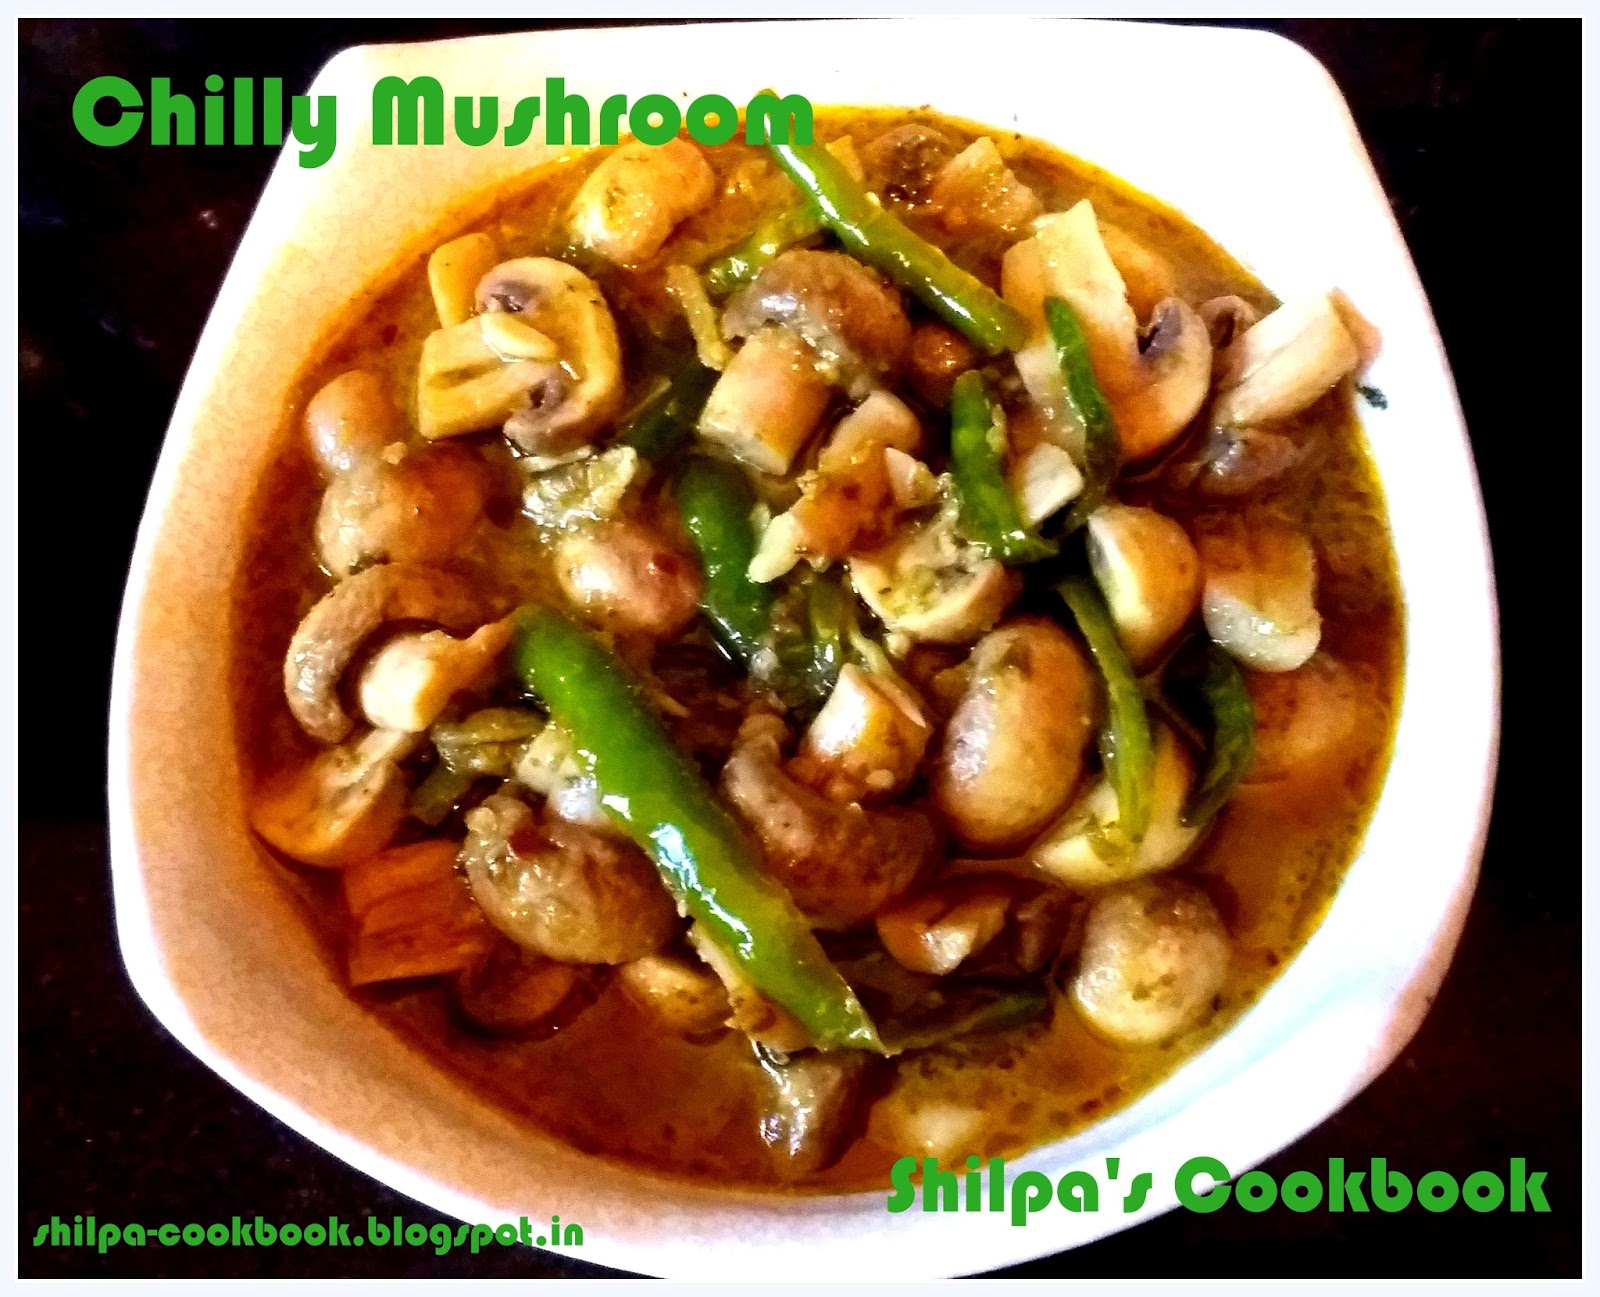 Cook book dish 450 chilly mushroom andhra style dish 450 chilly mushroom andhra style forumfinder Gallery